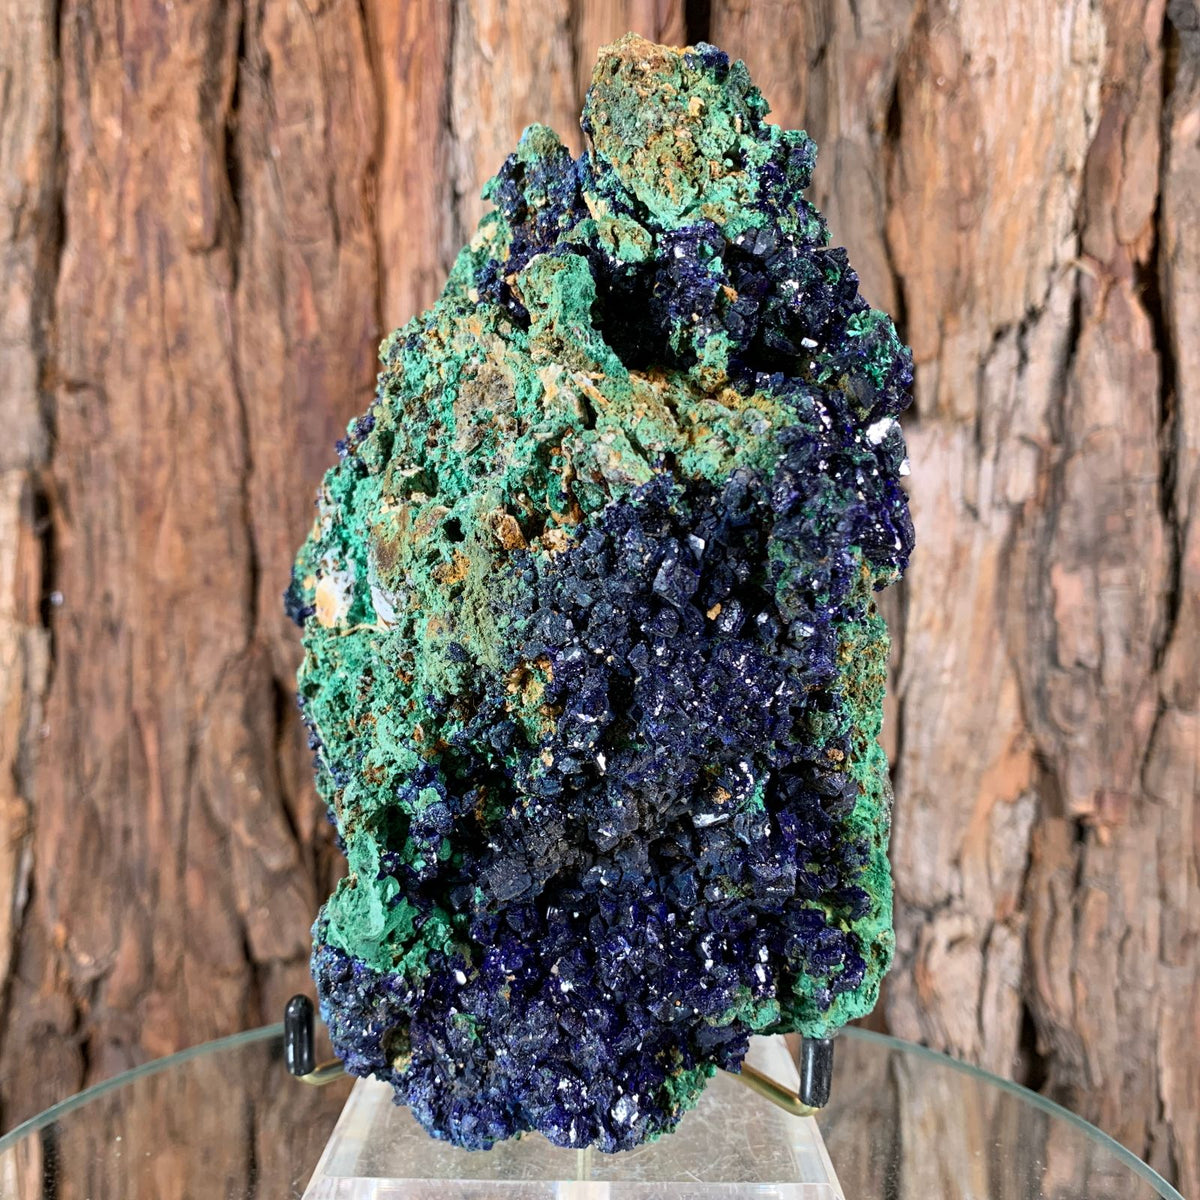 14.5cm 1.25kg Azurite and Malachite from Sepon Mine, Laos